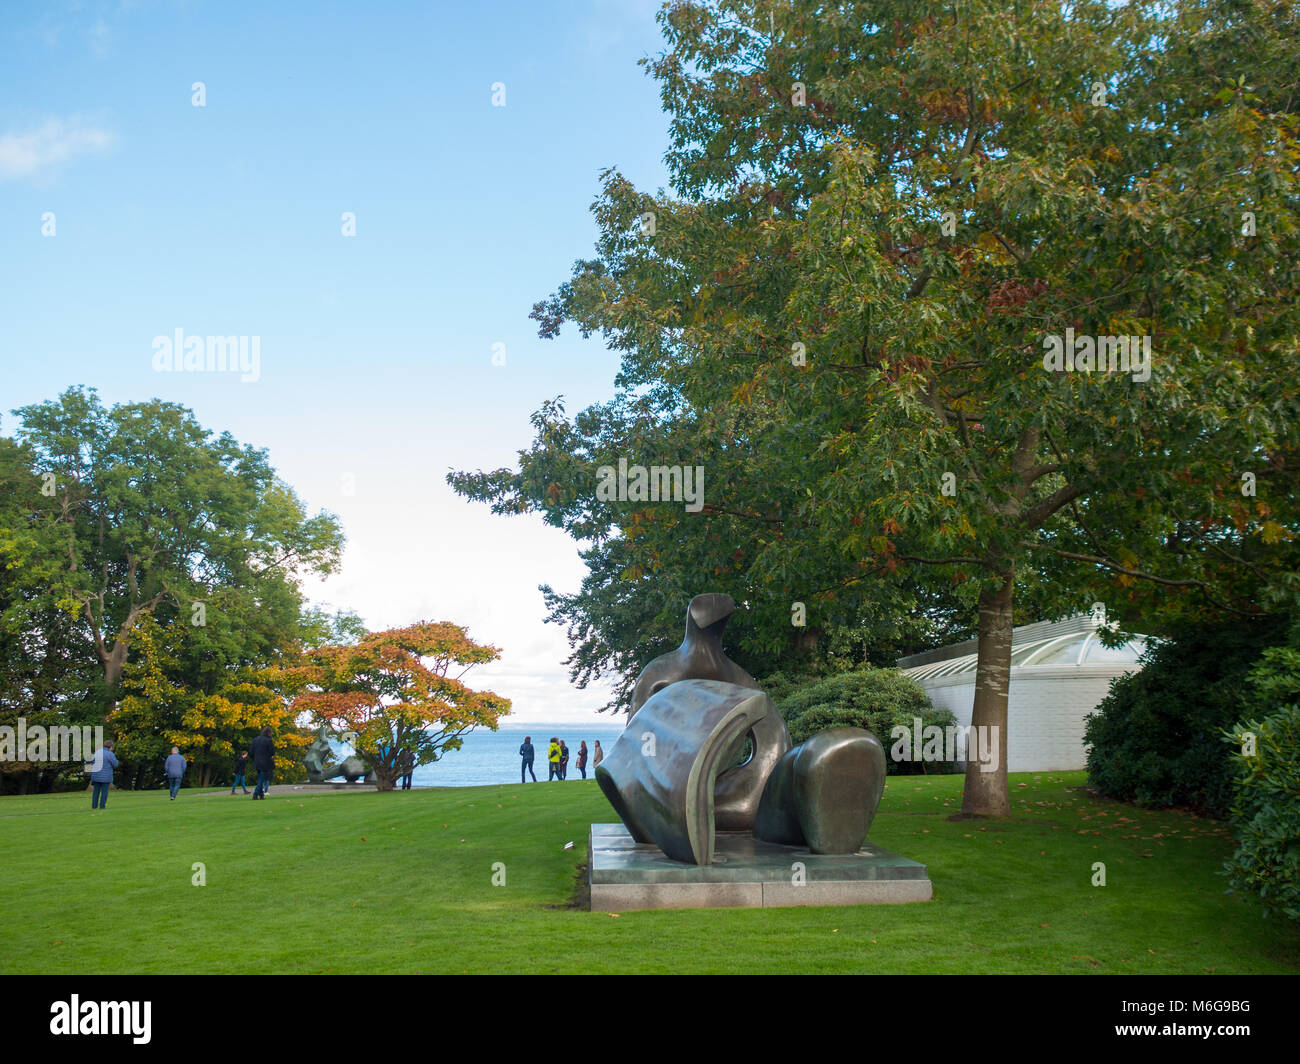 Louisiana Museum sculpture park - Stock Image